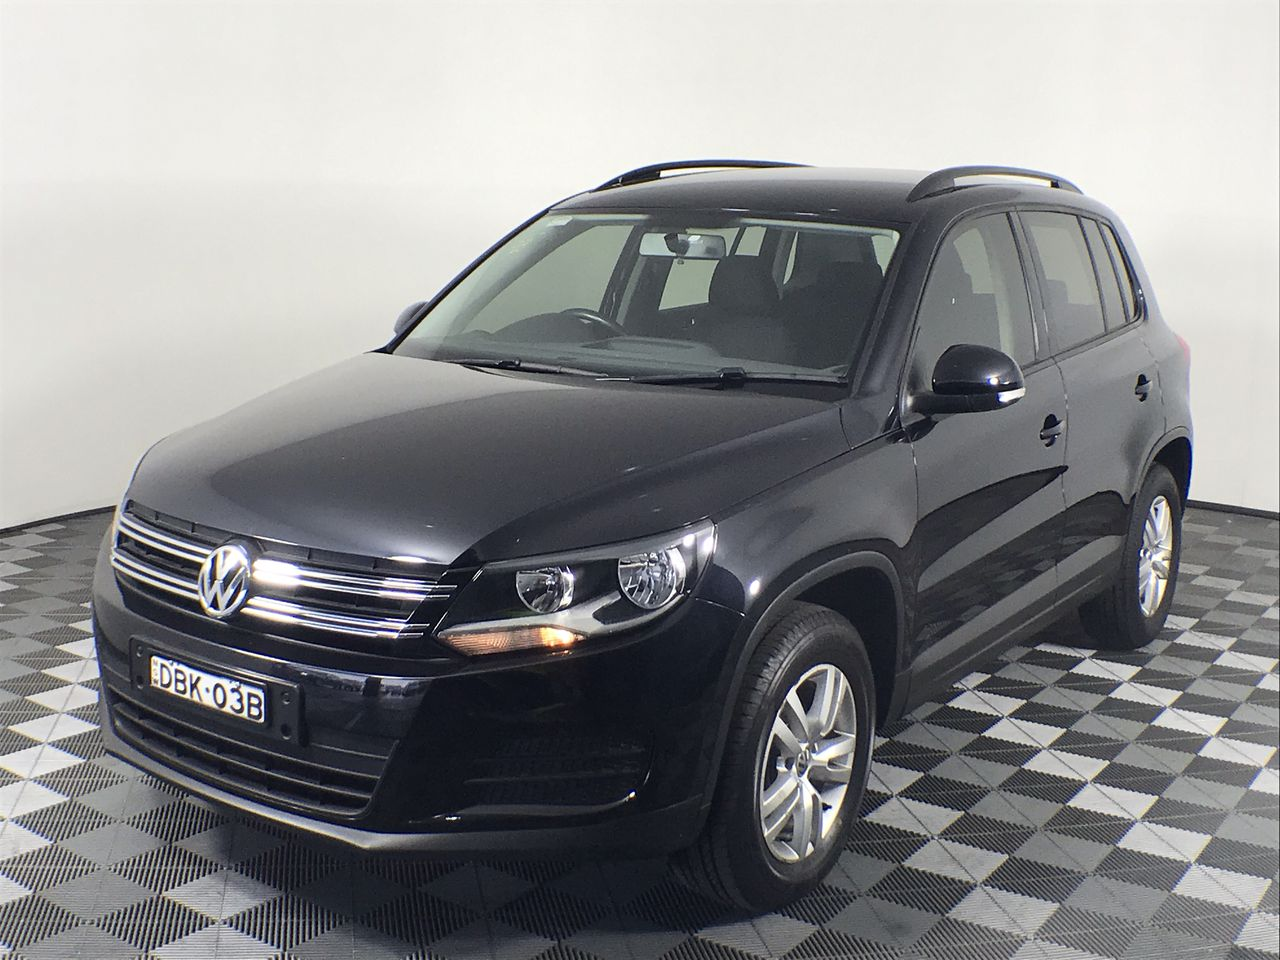 2015 Volkswagen Tiguan 118 TSI (4x2) 5N Automatic Wagon